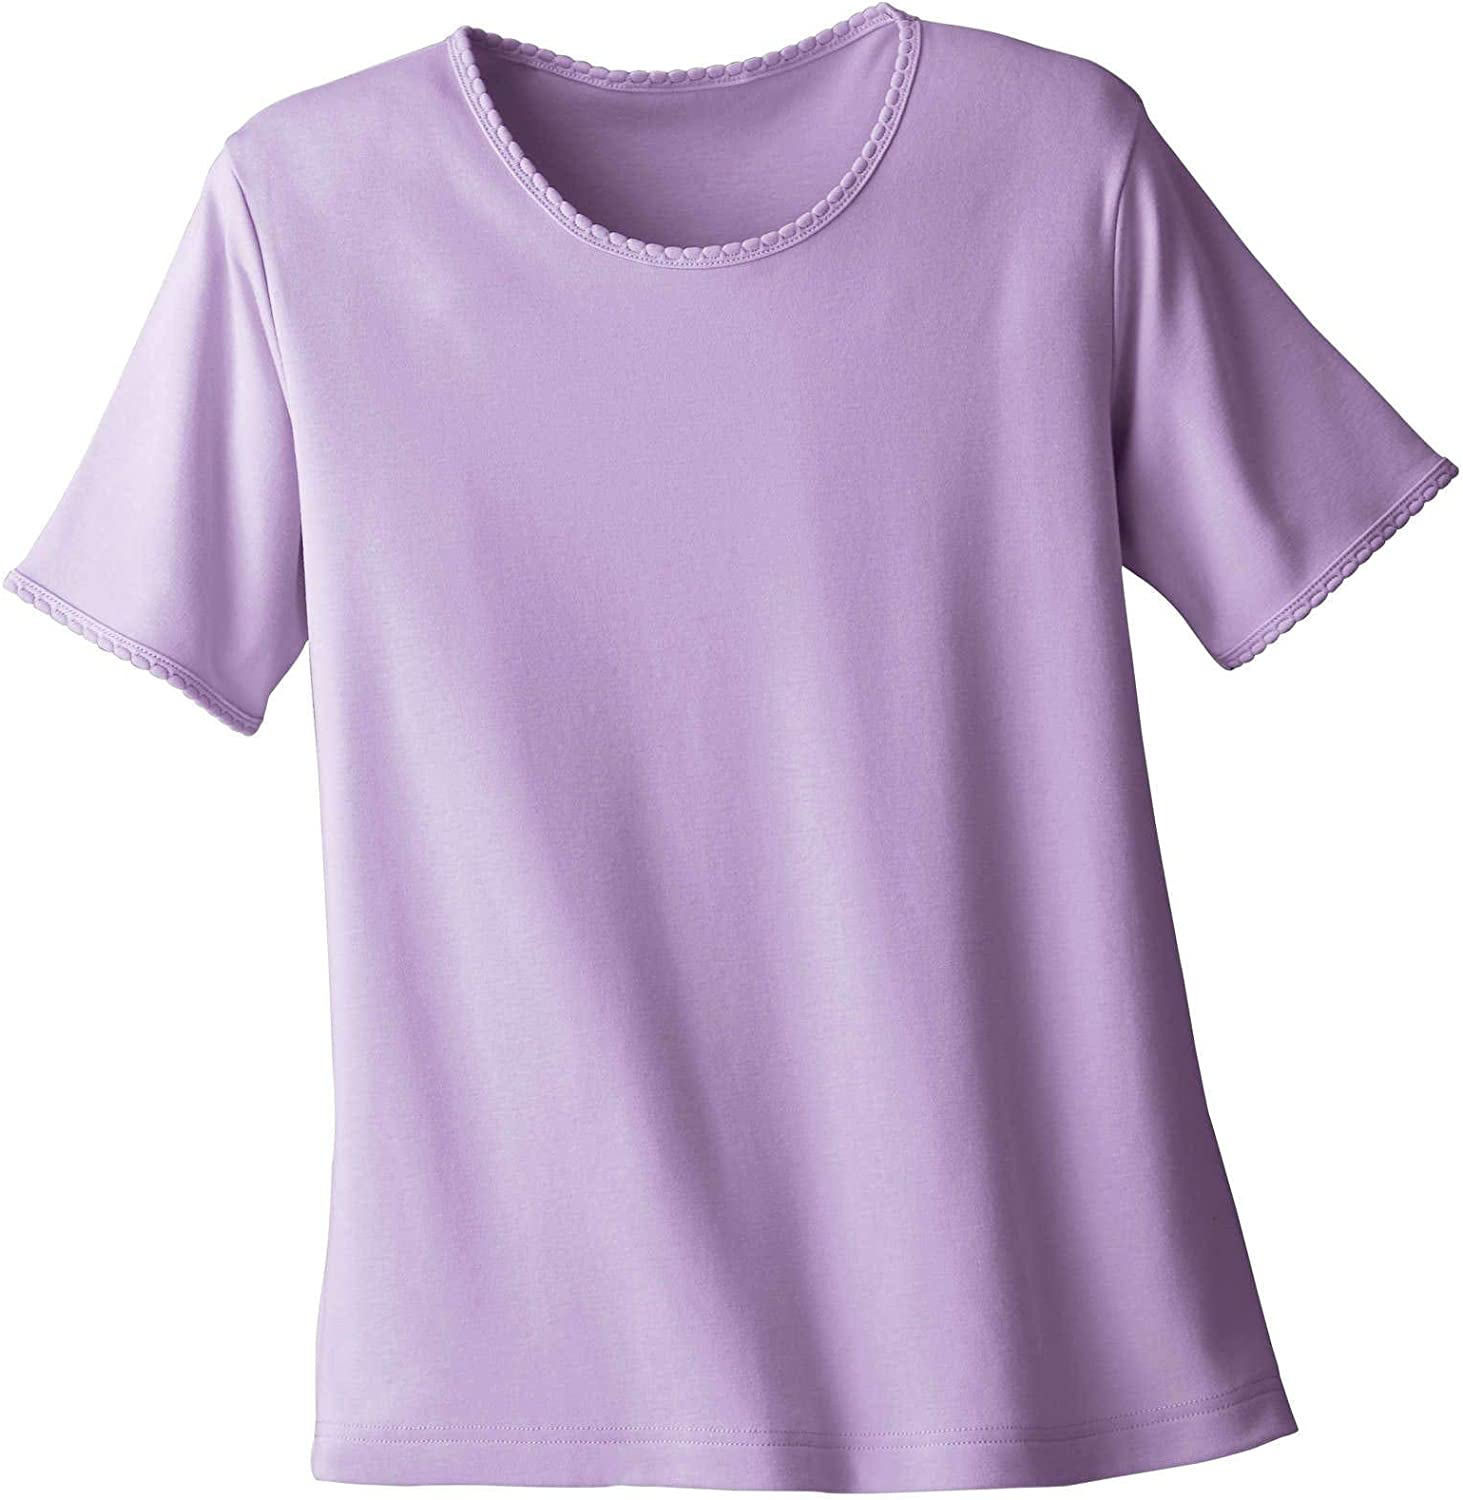 UltraSofts Knit Tee - Classic Comfort Top with Picot Trim Neckline - Exclusive UPF 50+ Knit